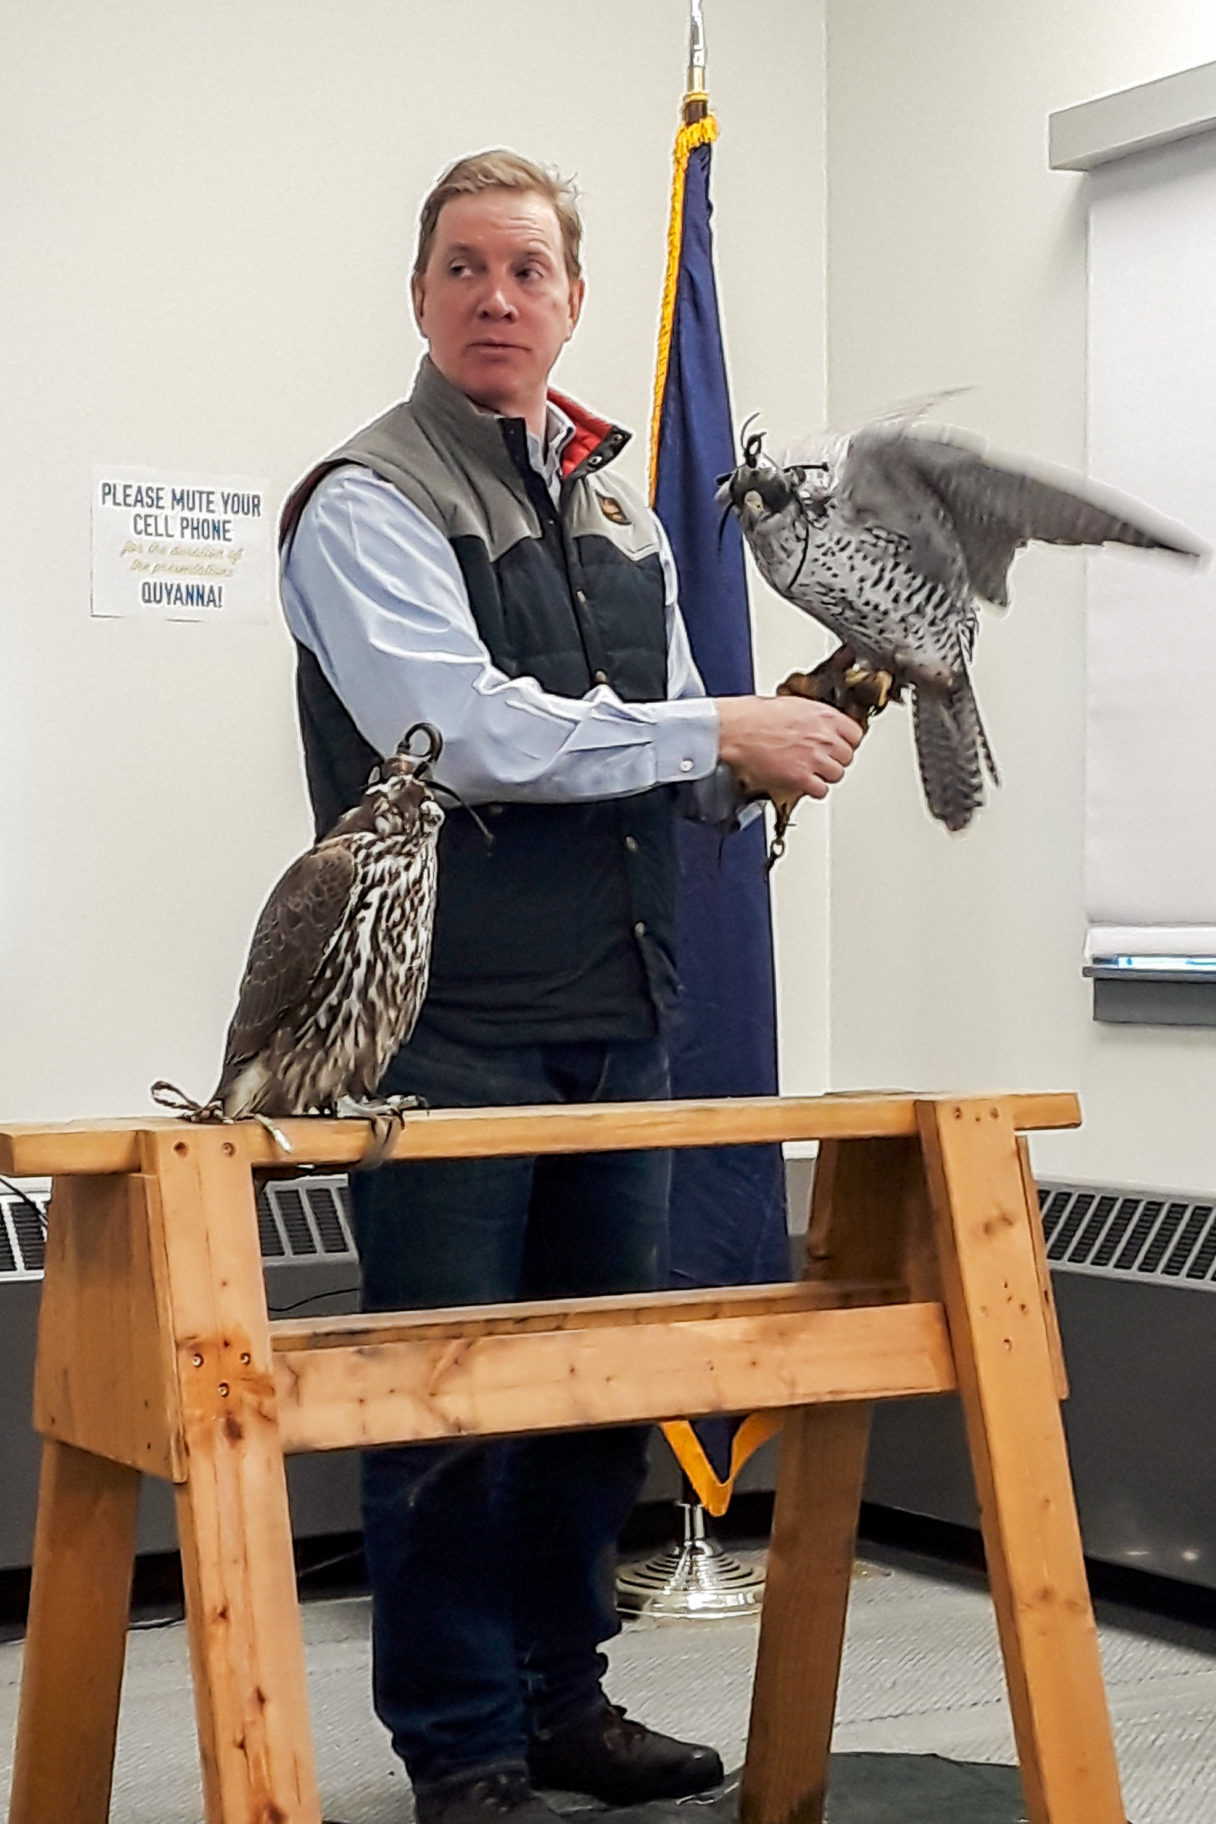 Man gives a presentation on falconry, with one falcon perched on his hand and the other resting nearby.